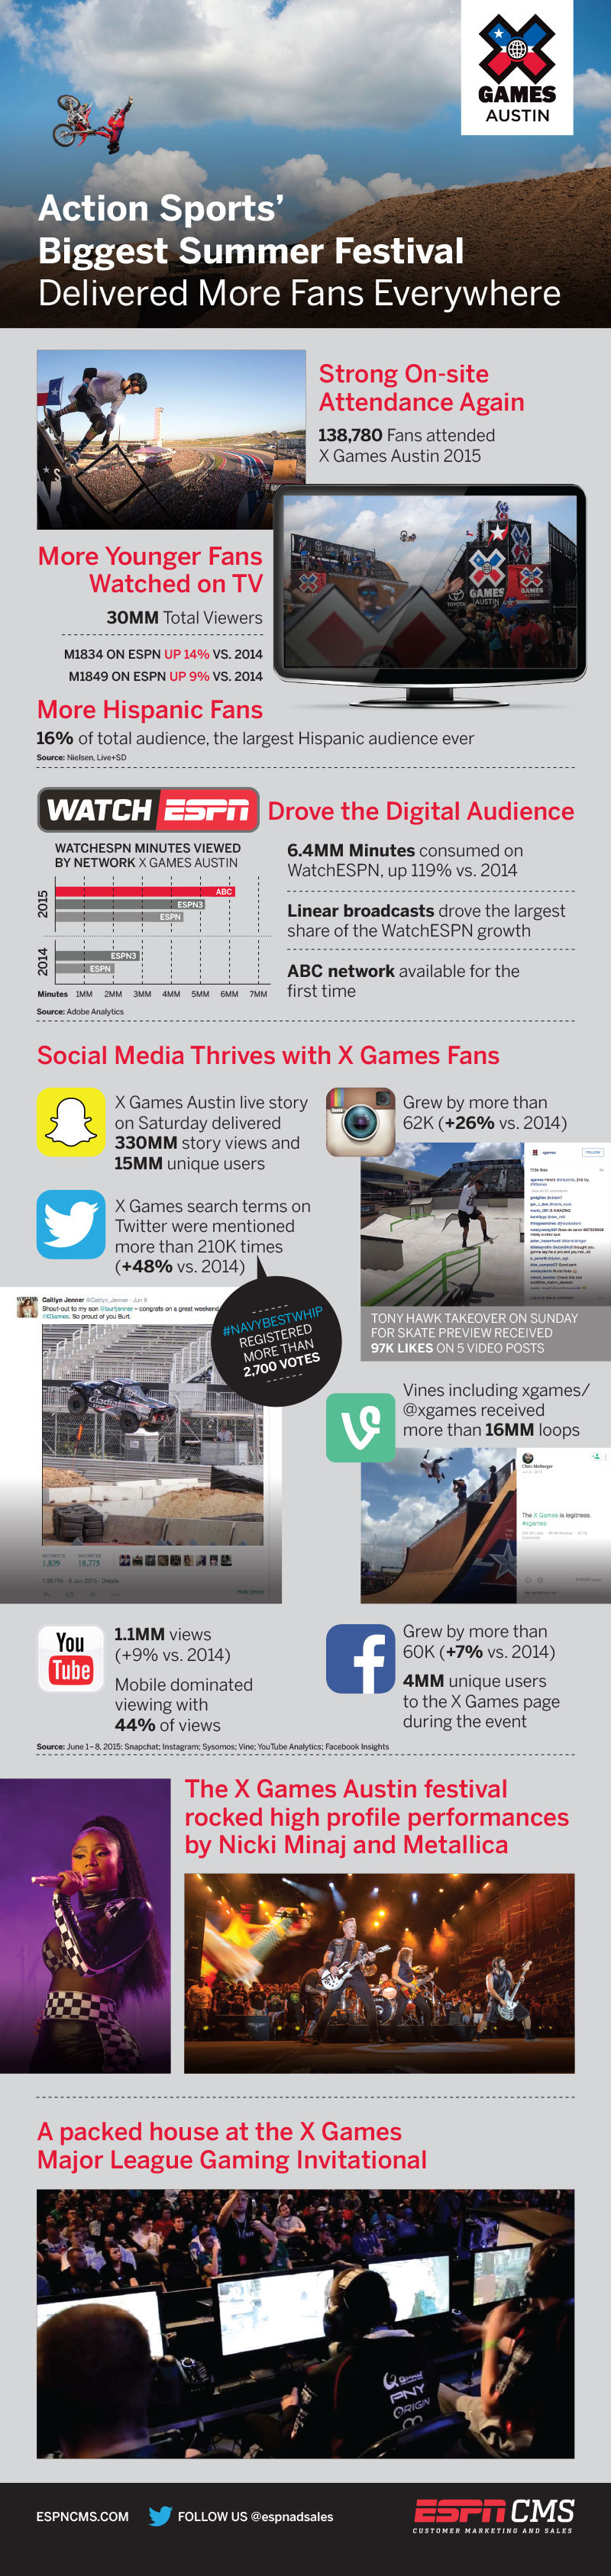 ESPNCMS Stream - X Games - Austin Recap - Action Sports' Biggest Summer Festival - Delivered More Fans Everywhere